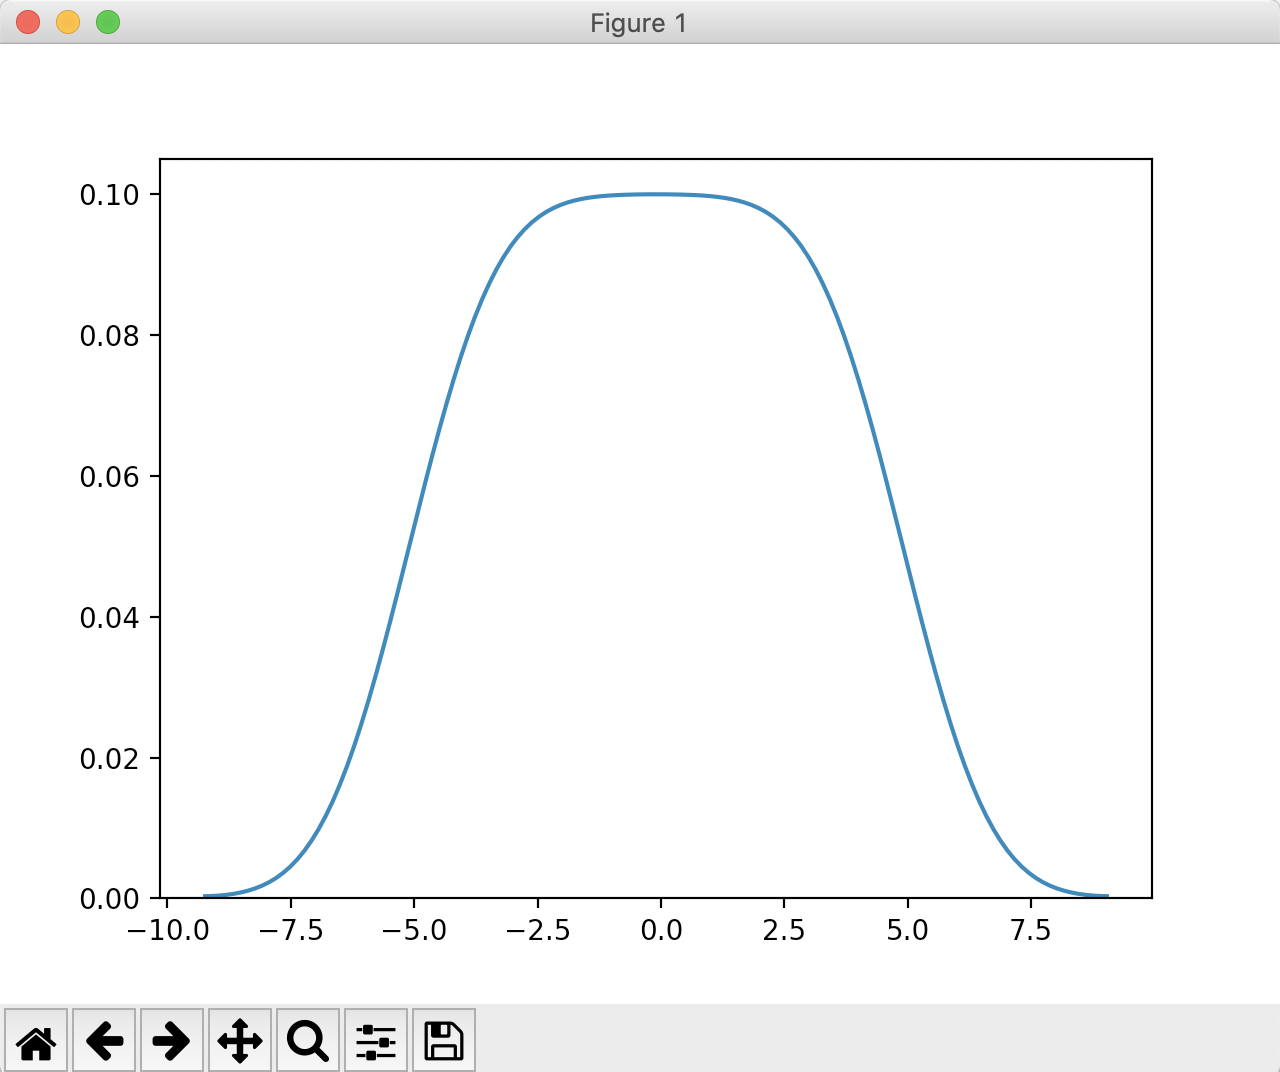 Drawing a KDE Plot in seaborn using Gaussian function